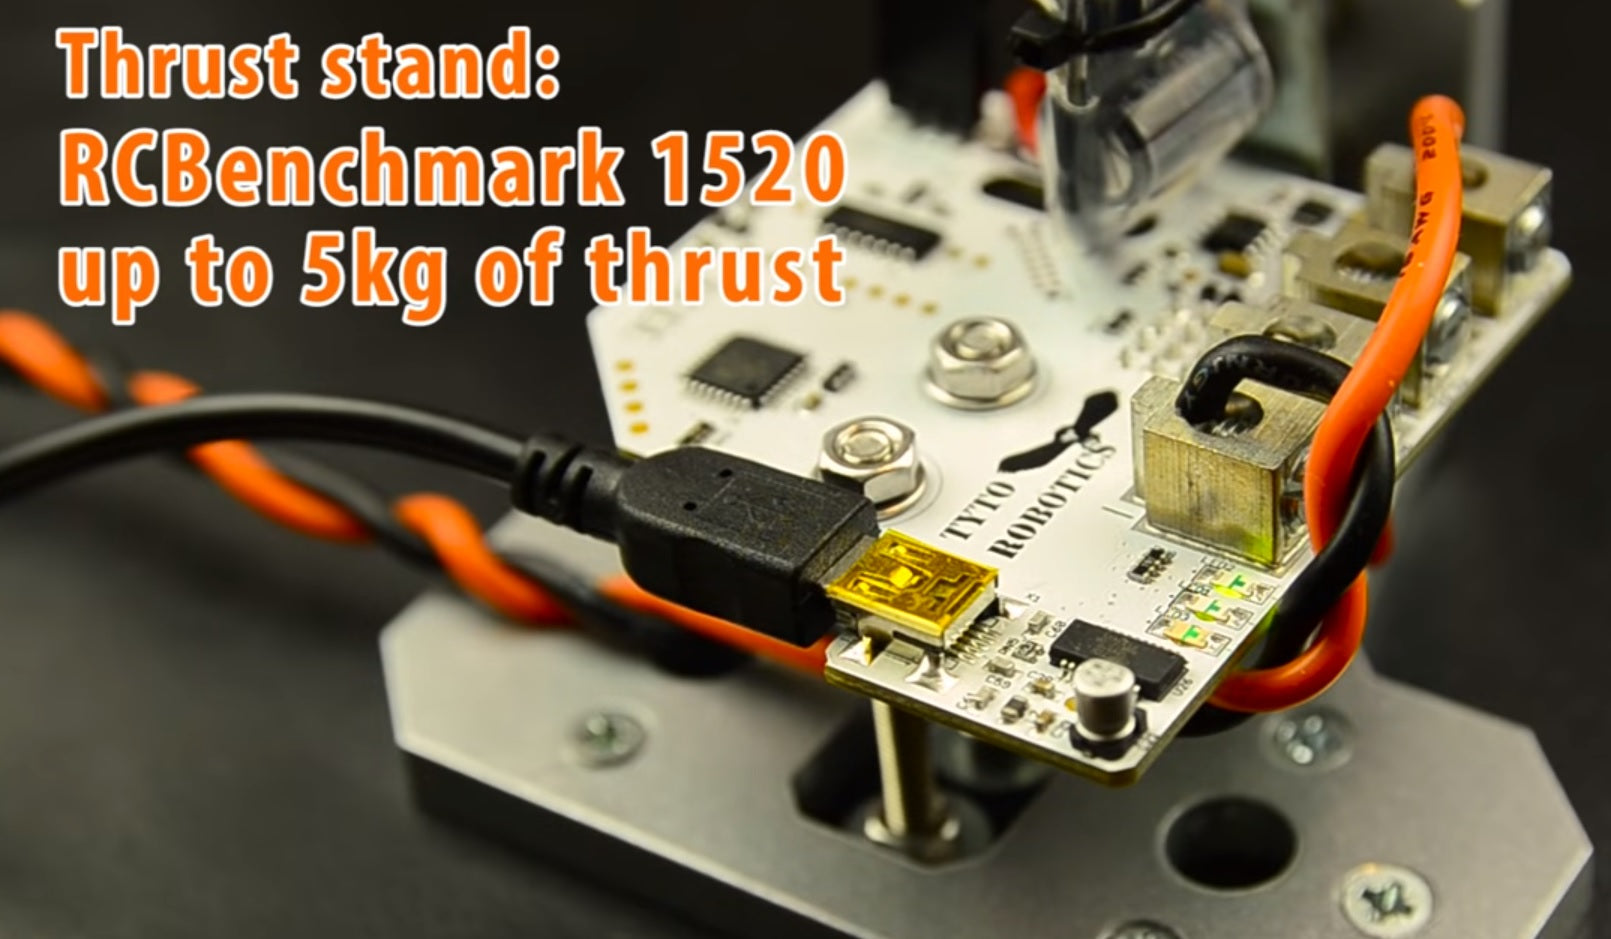 Thrust Stand Example From Mutefpv Youtube Channel Rcbenchmark Electrical Wiring Part Ii